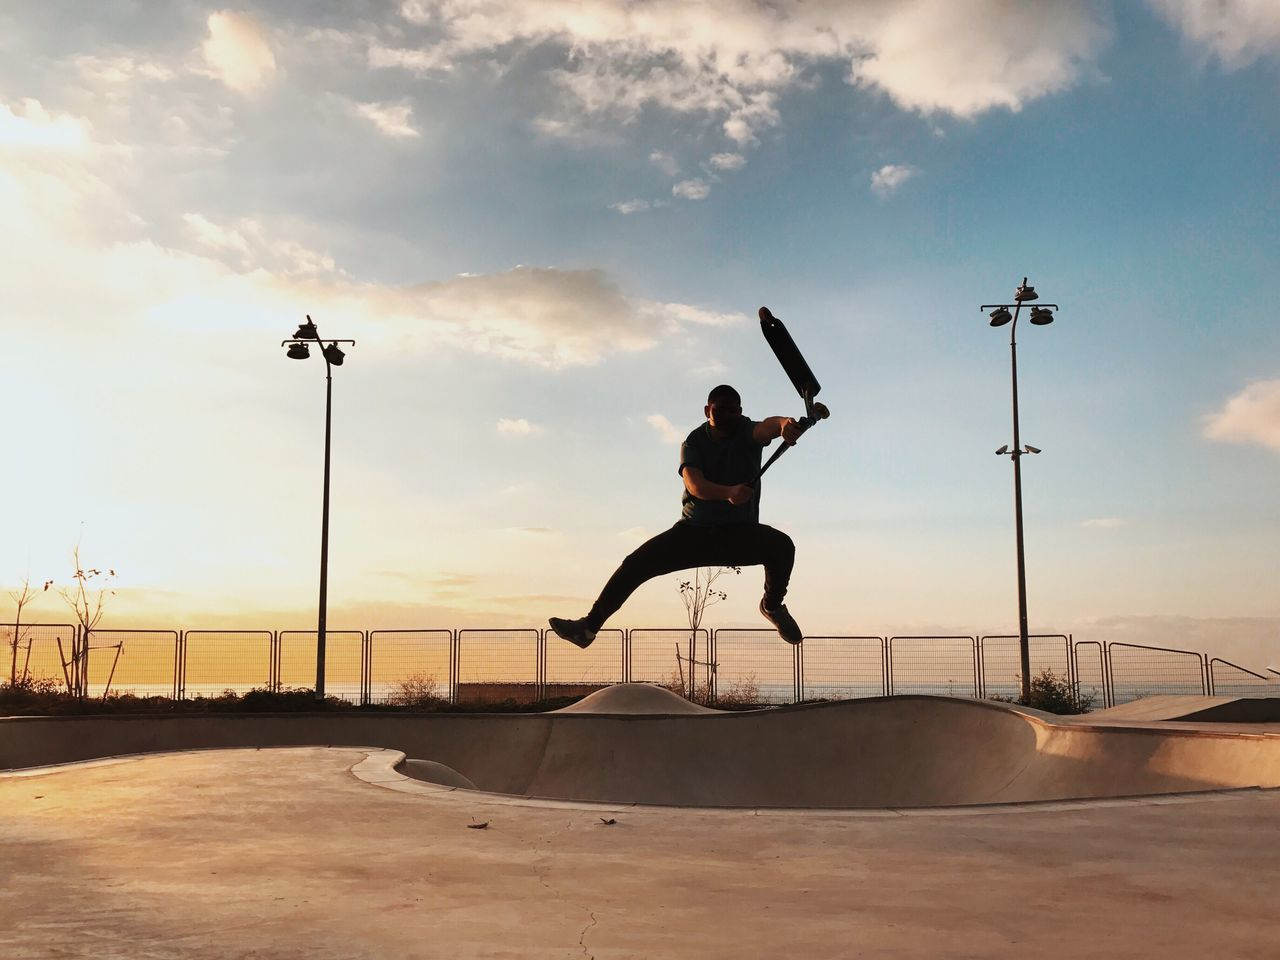 Jumping Leisure Activity Full Length Mid-air Skill  One Person Real People Sky Lifestyles Sunset Cloud - Sky Sport Vitality Outdoors Motion Exercising Day Men Skateboard Park Energetic Shotoniphone7plus מייאייפון7 IPhone7Plus The Street Photographer - 2017 EyeEm Awards מייסקייט